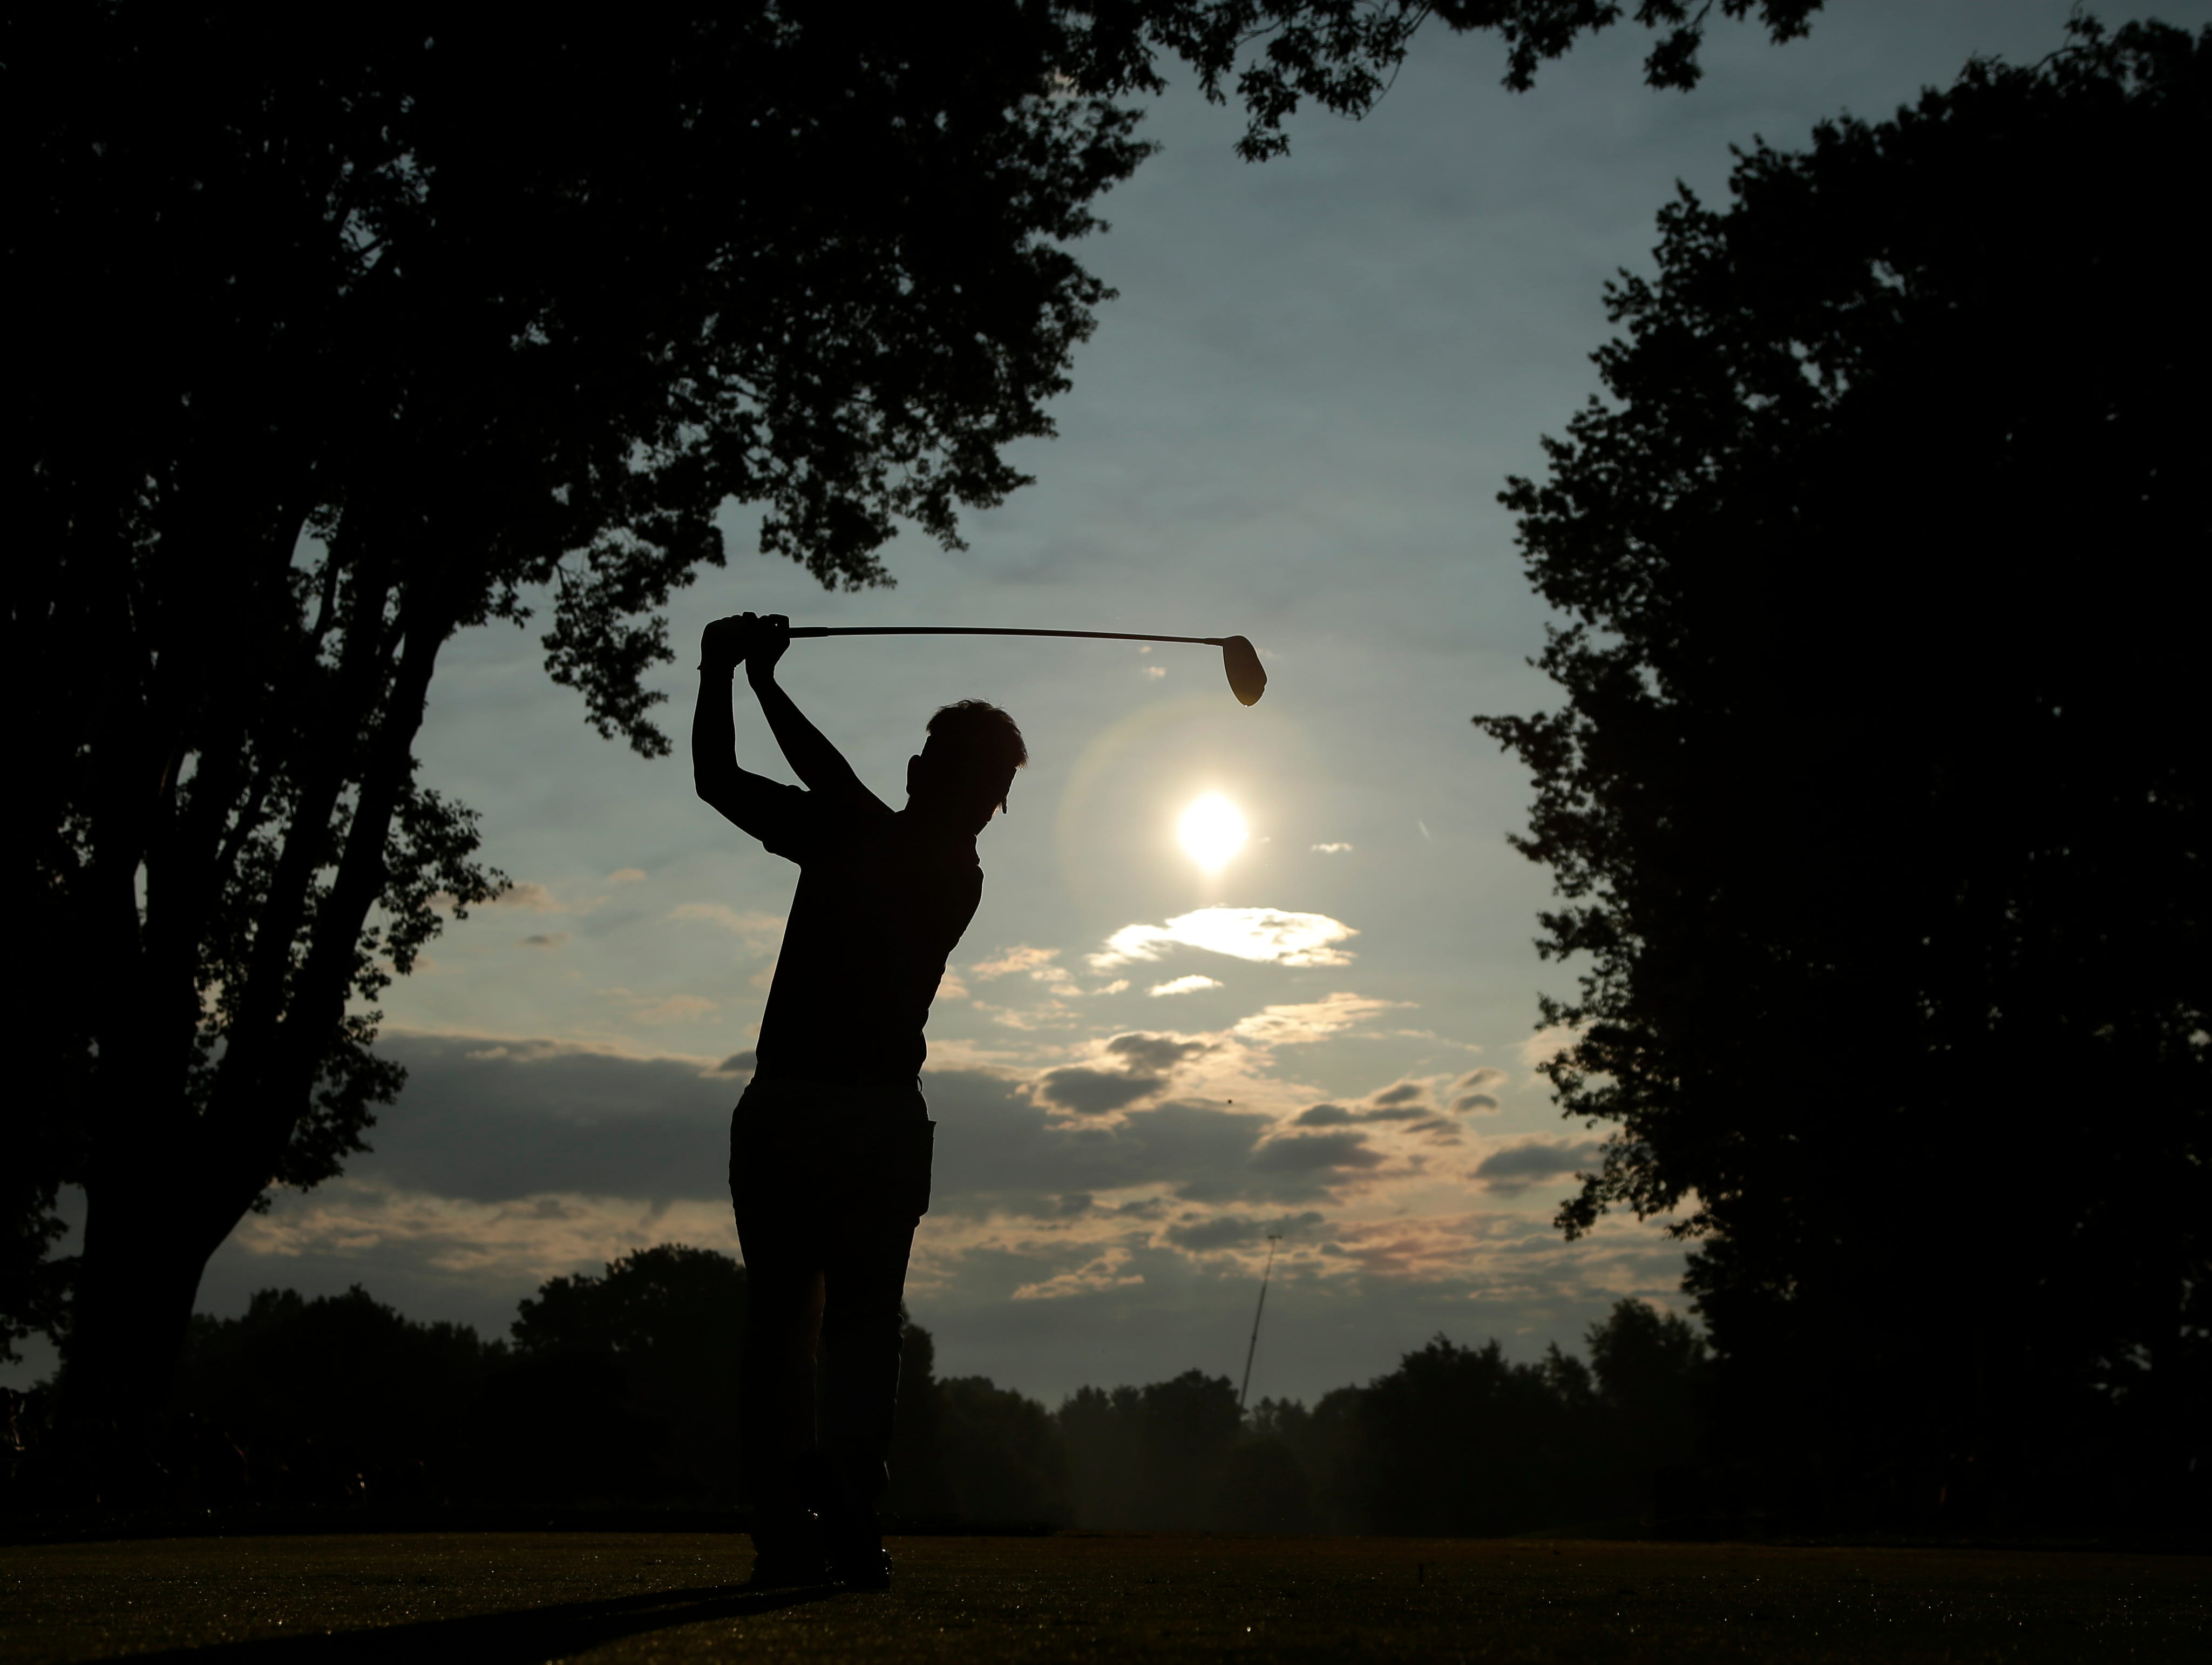 Hiroyuki Fujita, of Japan, tees off on the 10th hole during the first round of the PGA Championship golf tournament at Oak Hill Country Club.